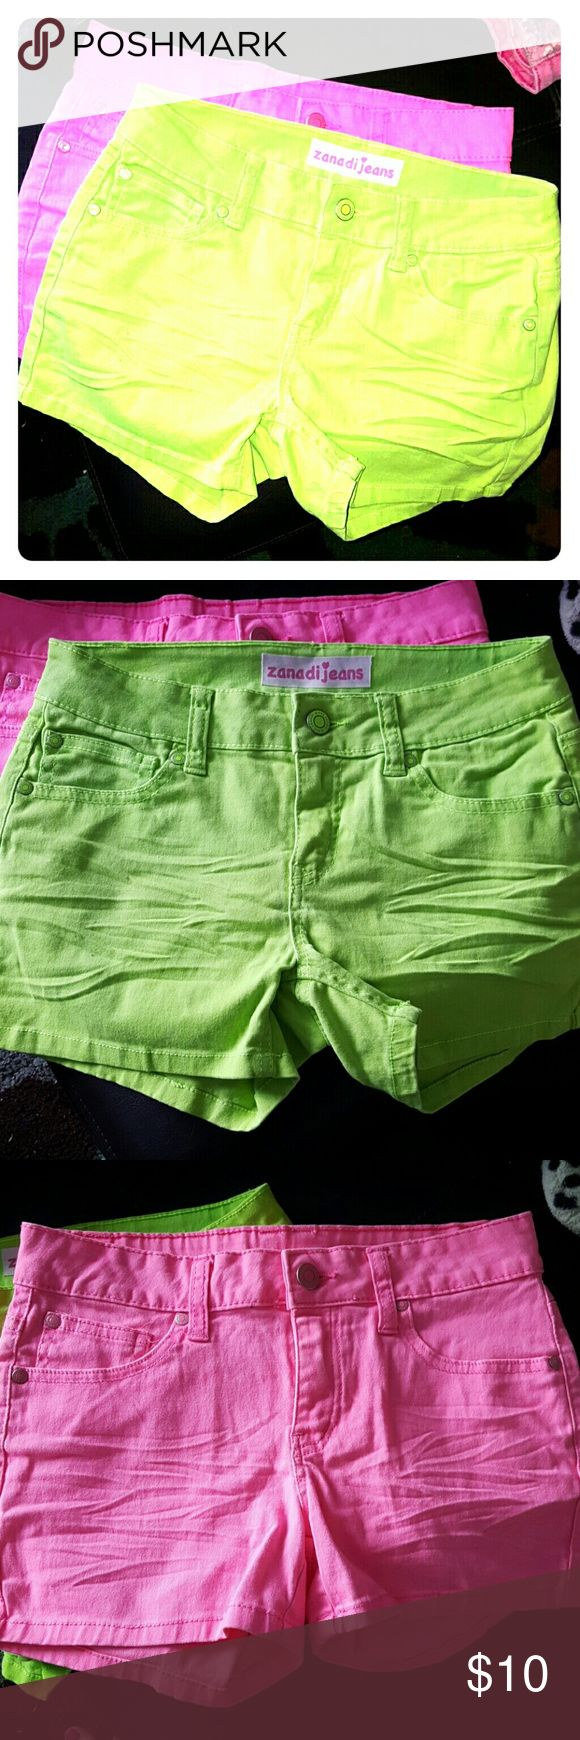 2 Pair of Neon Shorts-NWOT One Hot Pink and One Neon Green shorts NWOT Never worn Zanadi Jeans Bottoms Shorts